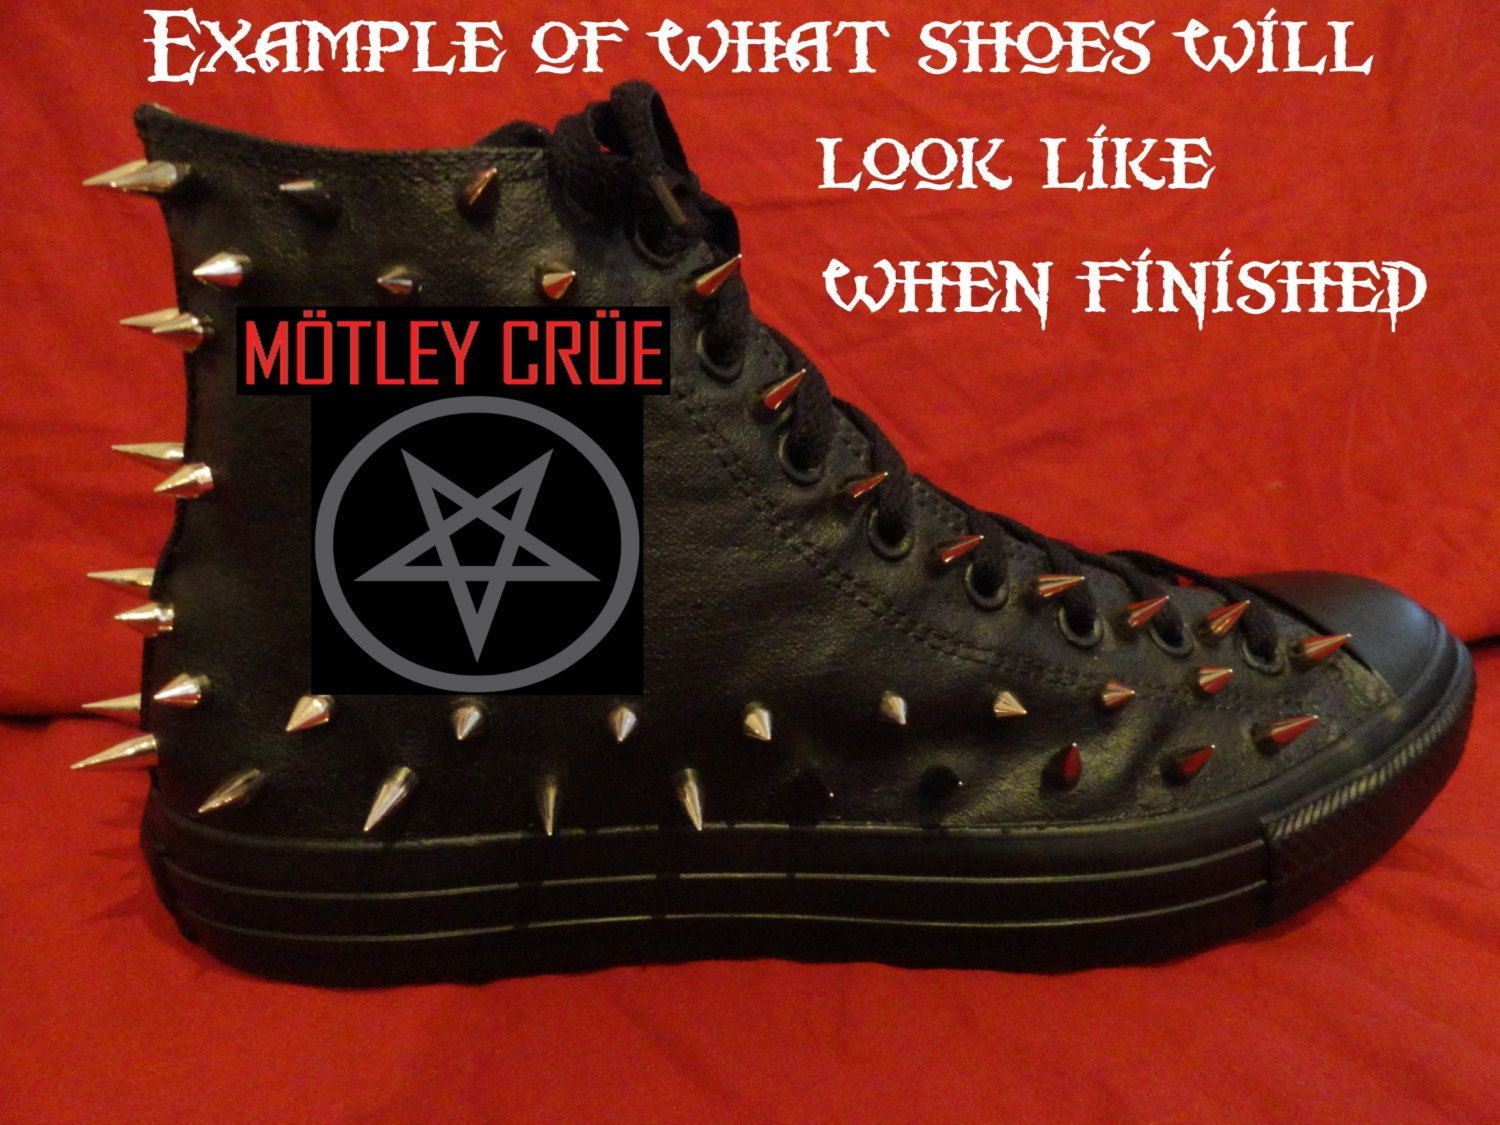 68291bc49a7 MOTLEY CRUE Heavy Metal Punk Rock Custom DIY Studded Converse Chuck Taylor  All Star Sneakers Shoes with Spikes not shirt by prettychuckedup on Etsy